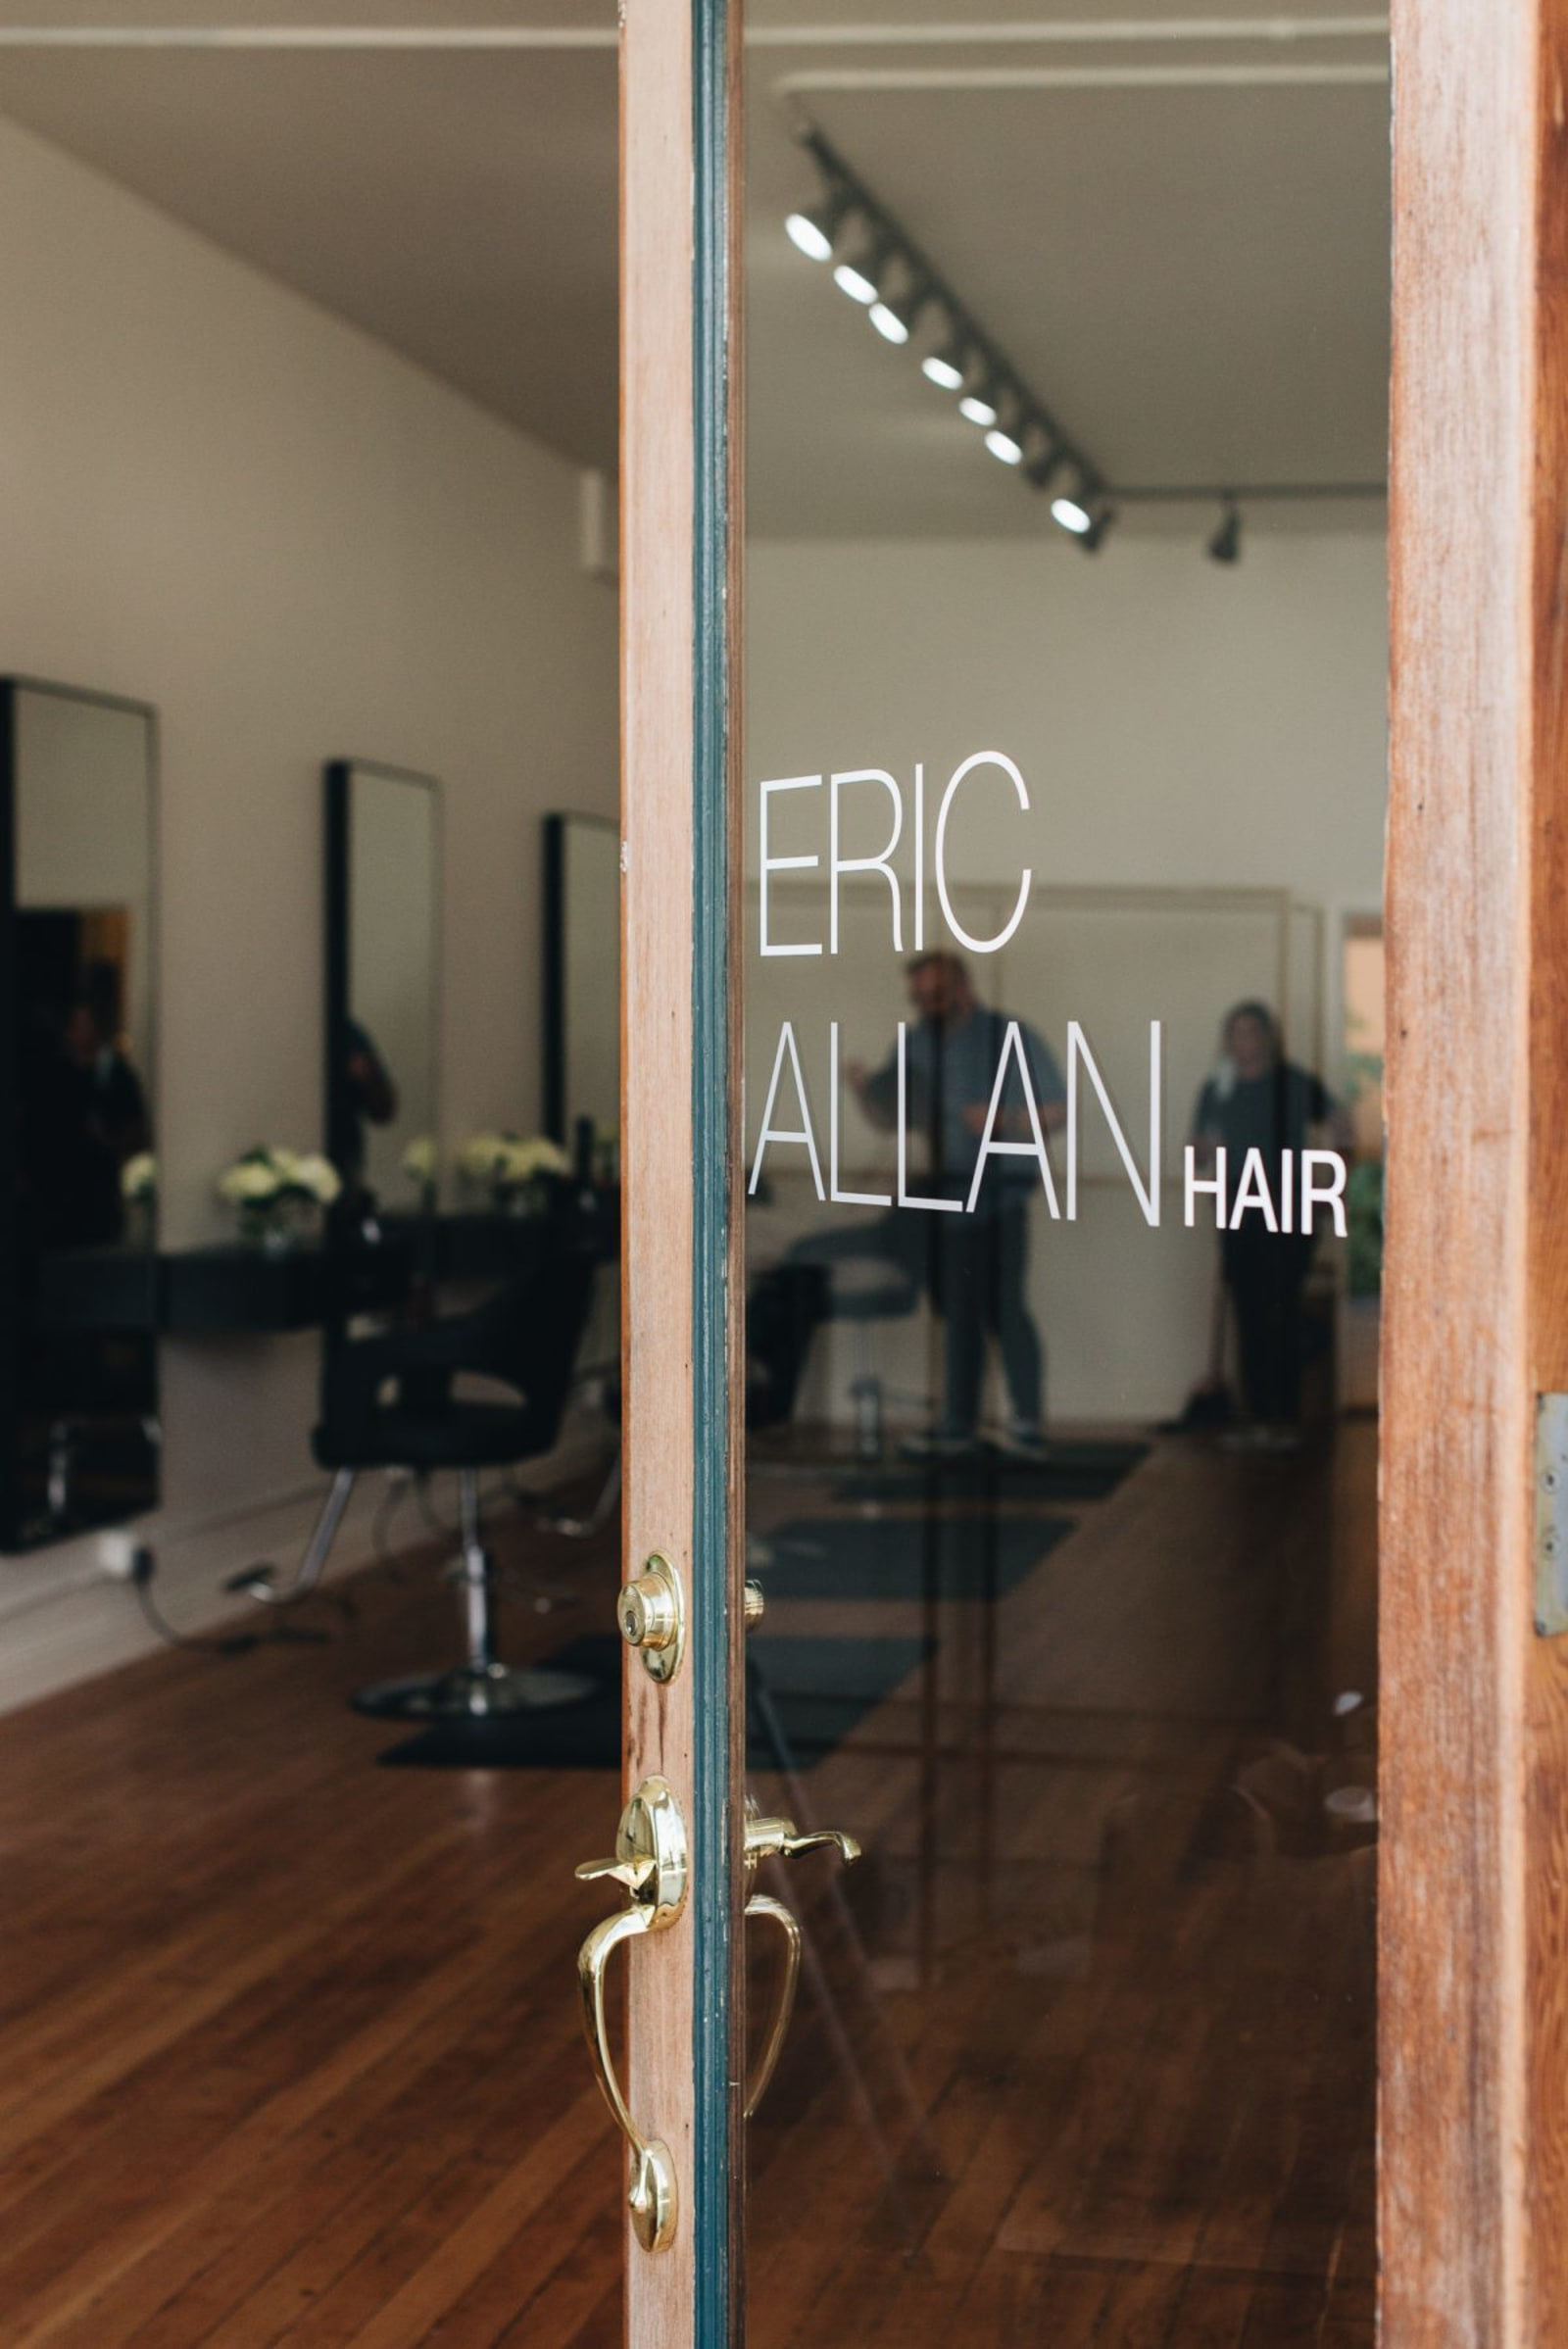 Gifts at ERIC ALLAN HAIR